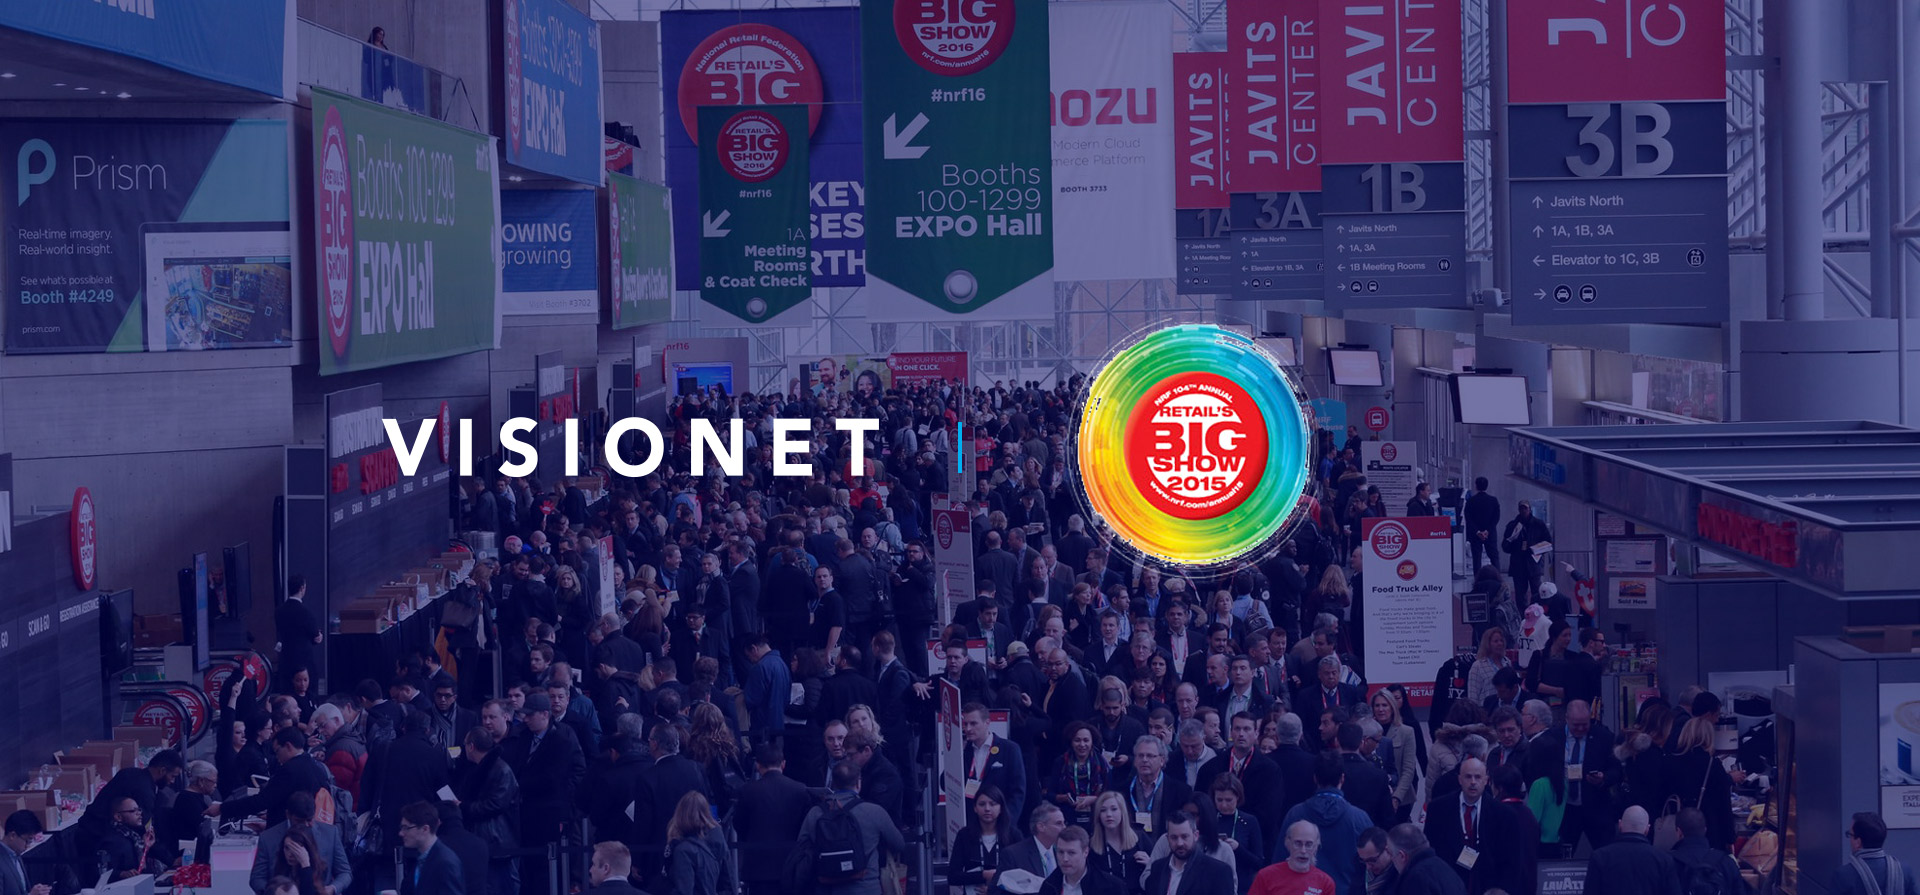 Visionet announces participation in Retail's Big Show 2015